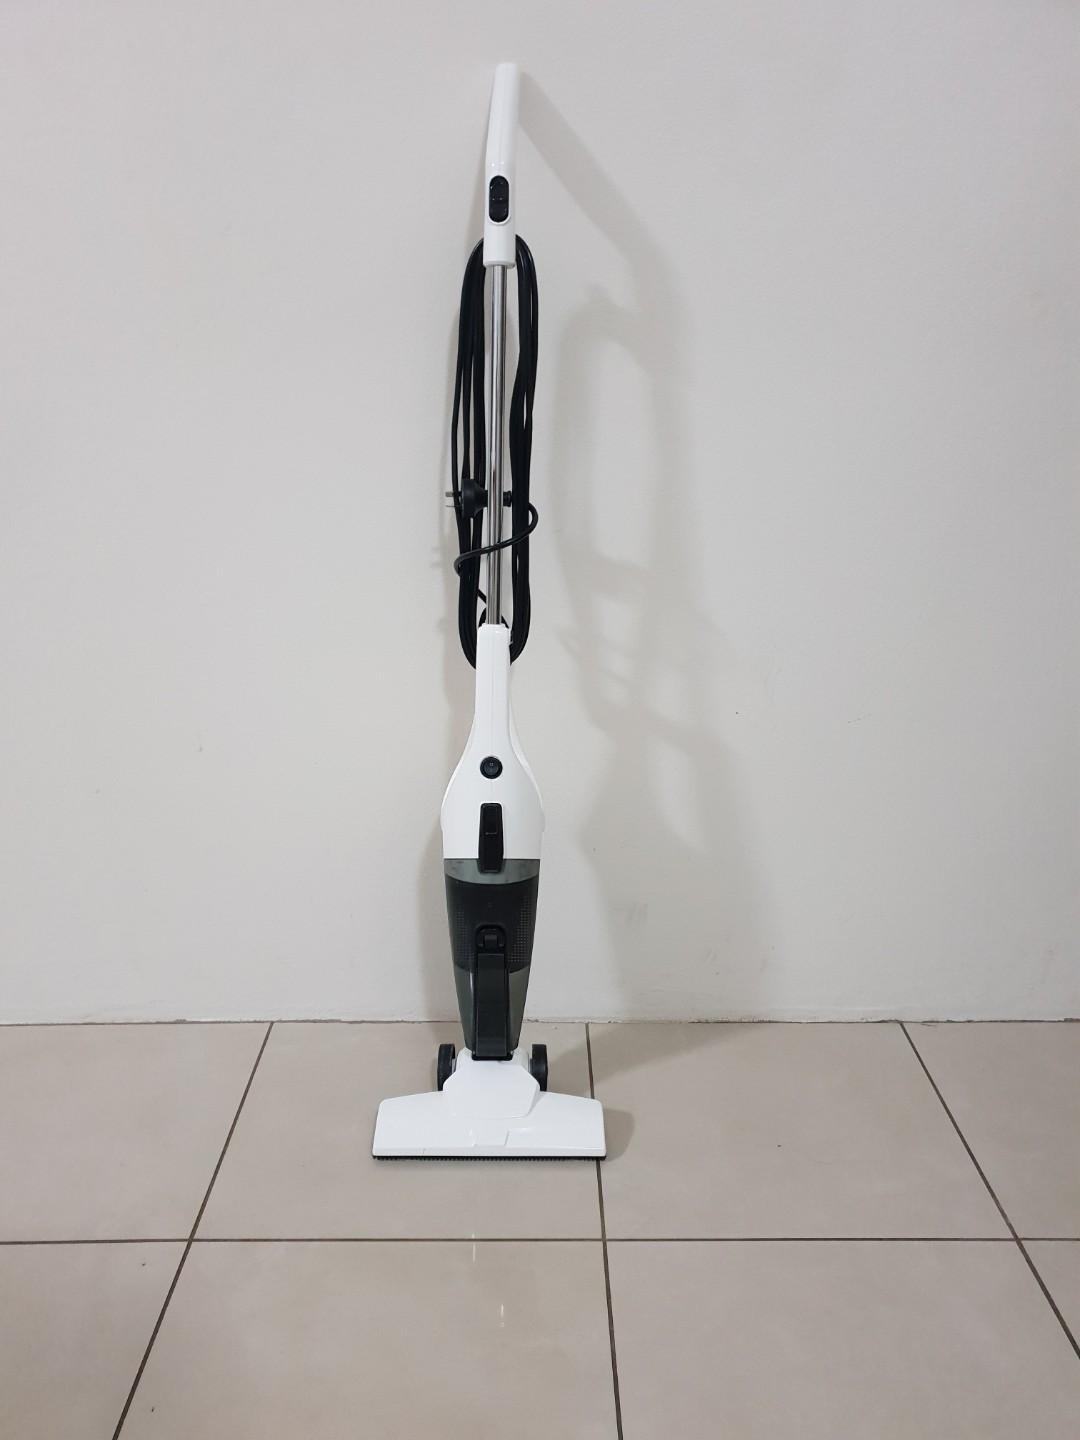 Home & Co 2 in 1 Corded Stick Vacuum